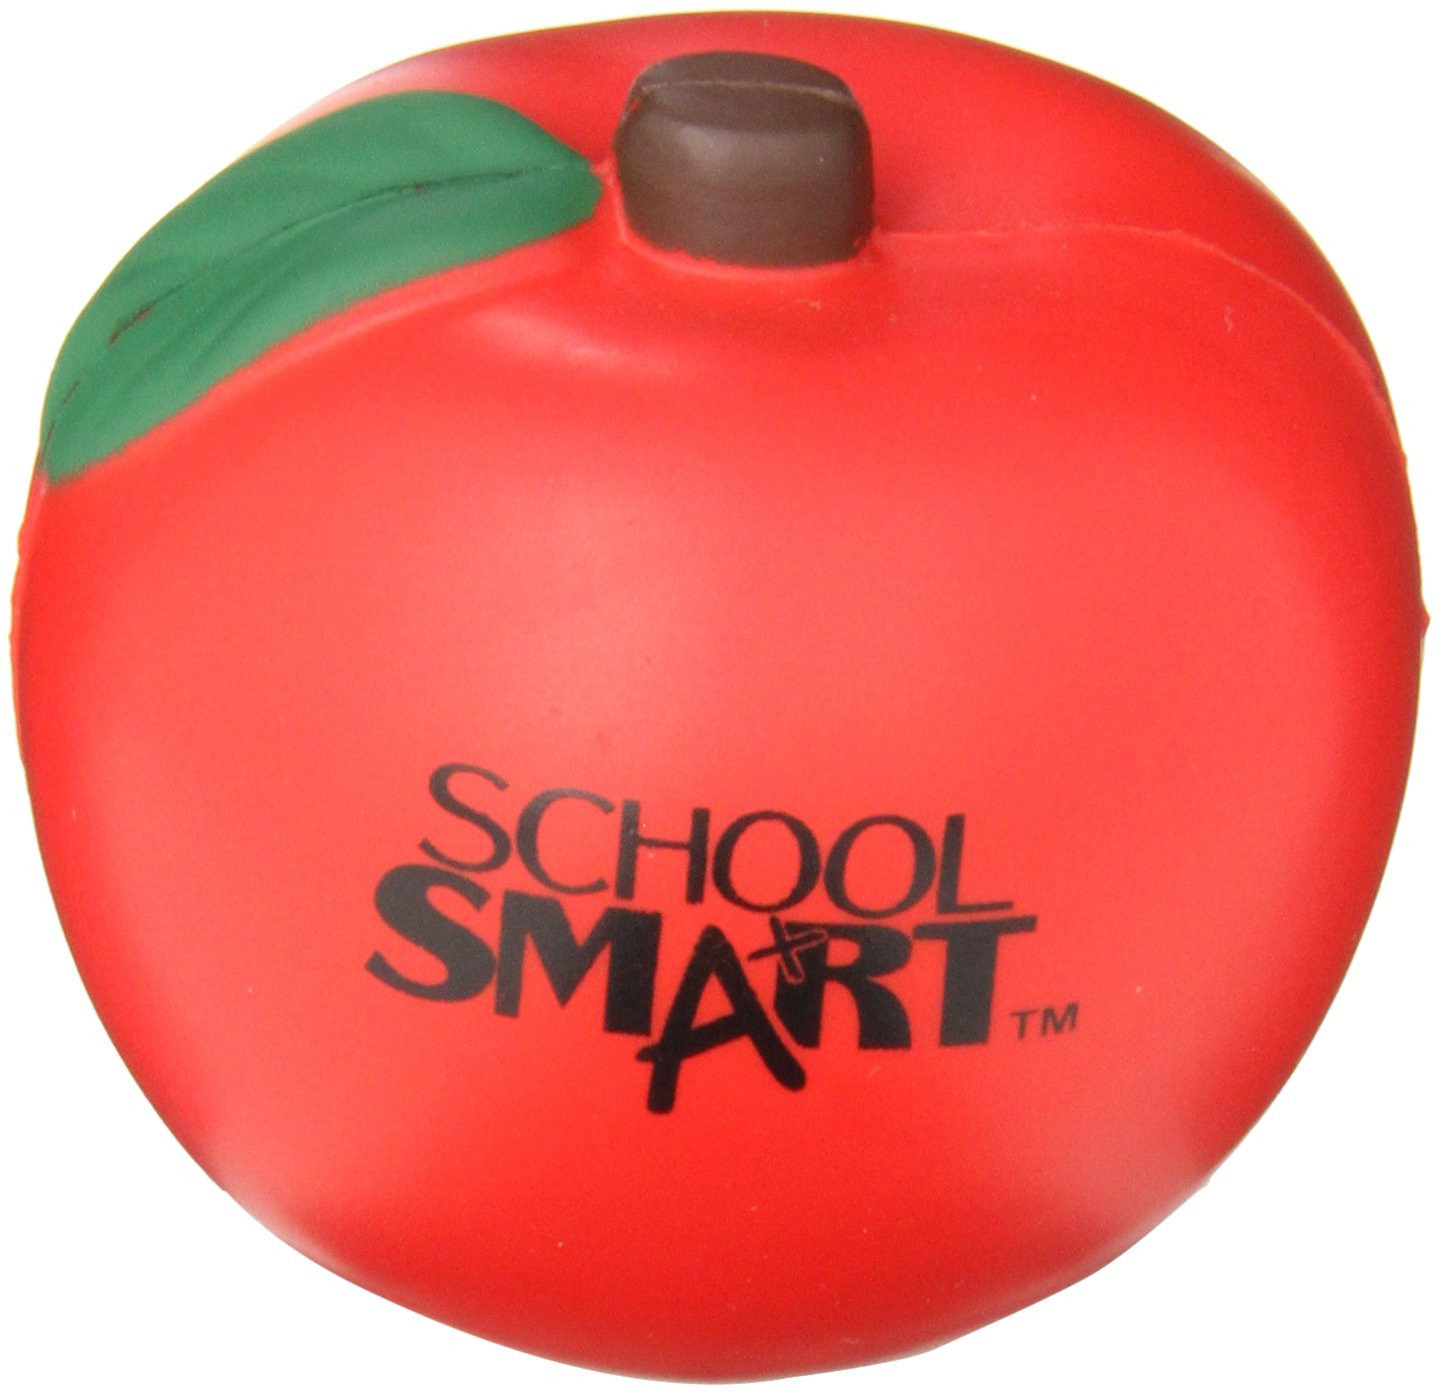 School Smart Apple Shape Stress Ball